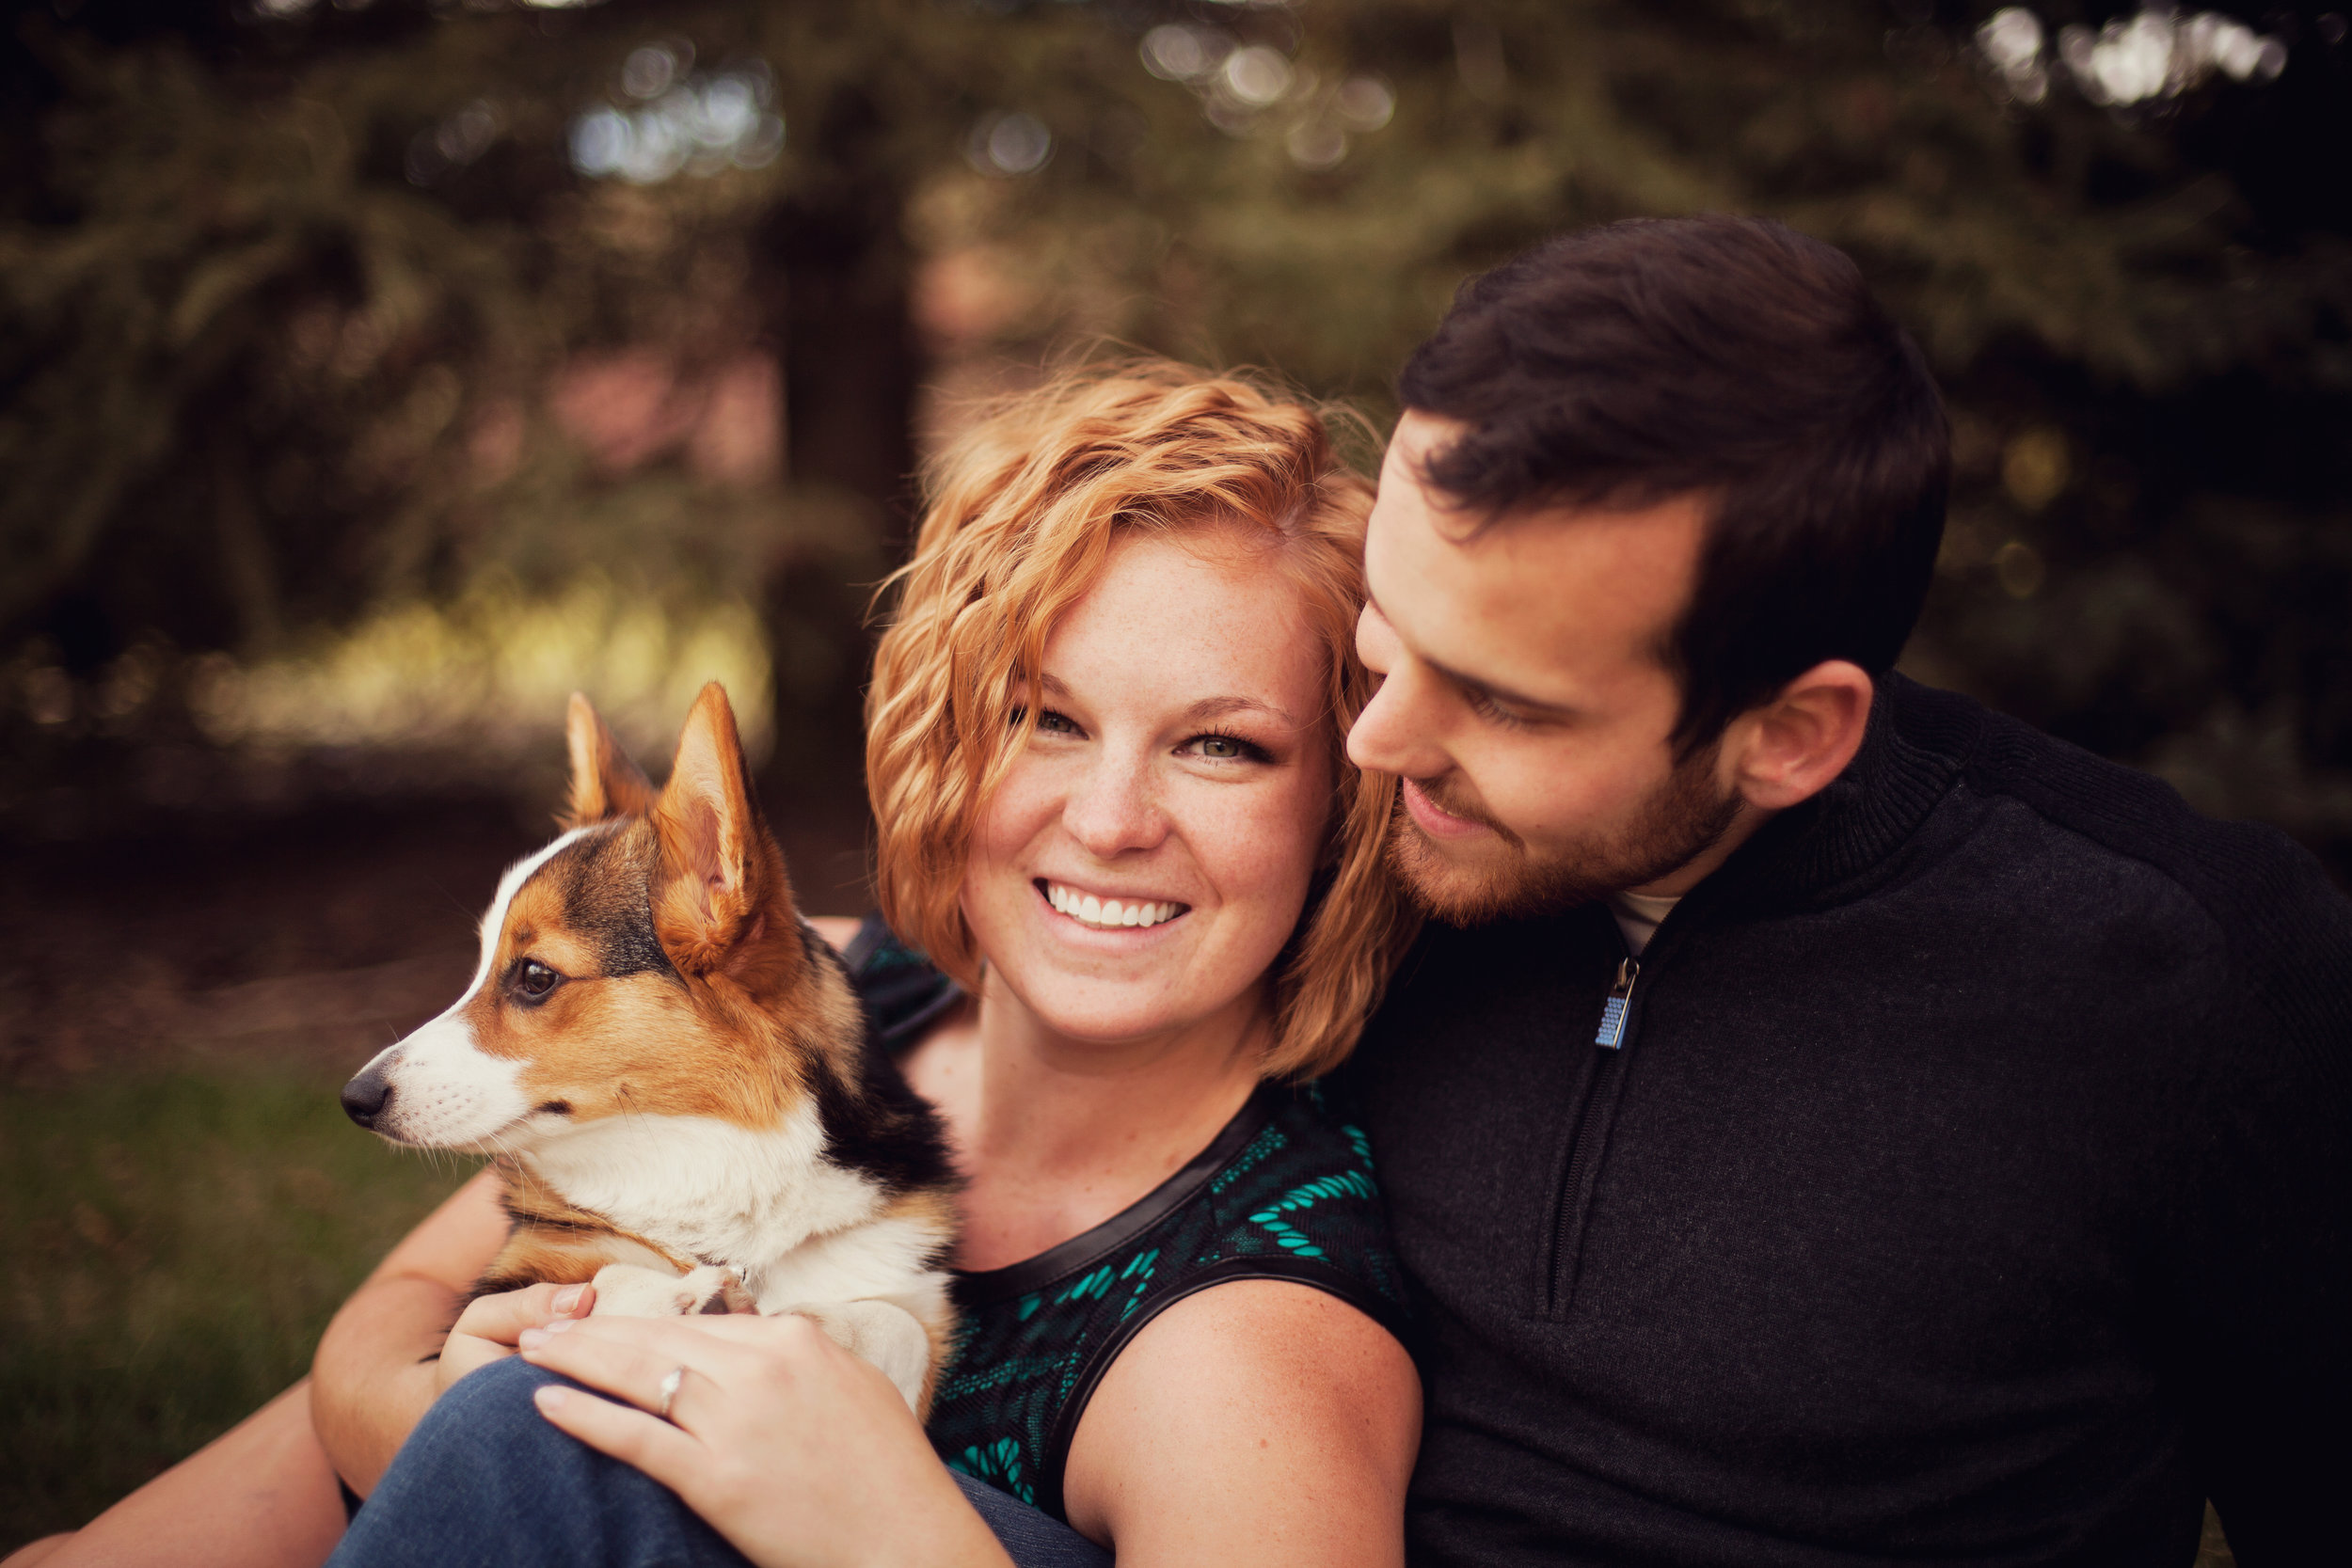 Very professional and creative in both portrait and landscape photography. Warren was great with his composure and was friendly throughout our experience. He has done our engament photos as well as some odd and end shoots. My wife and I have even bought a few of his landscape prints! Overall he deserves the 5 star rating. - Mikayla & Bruce